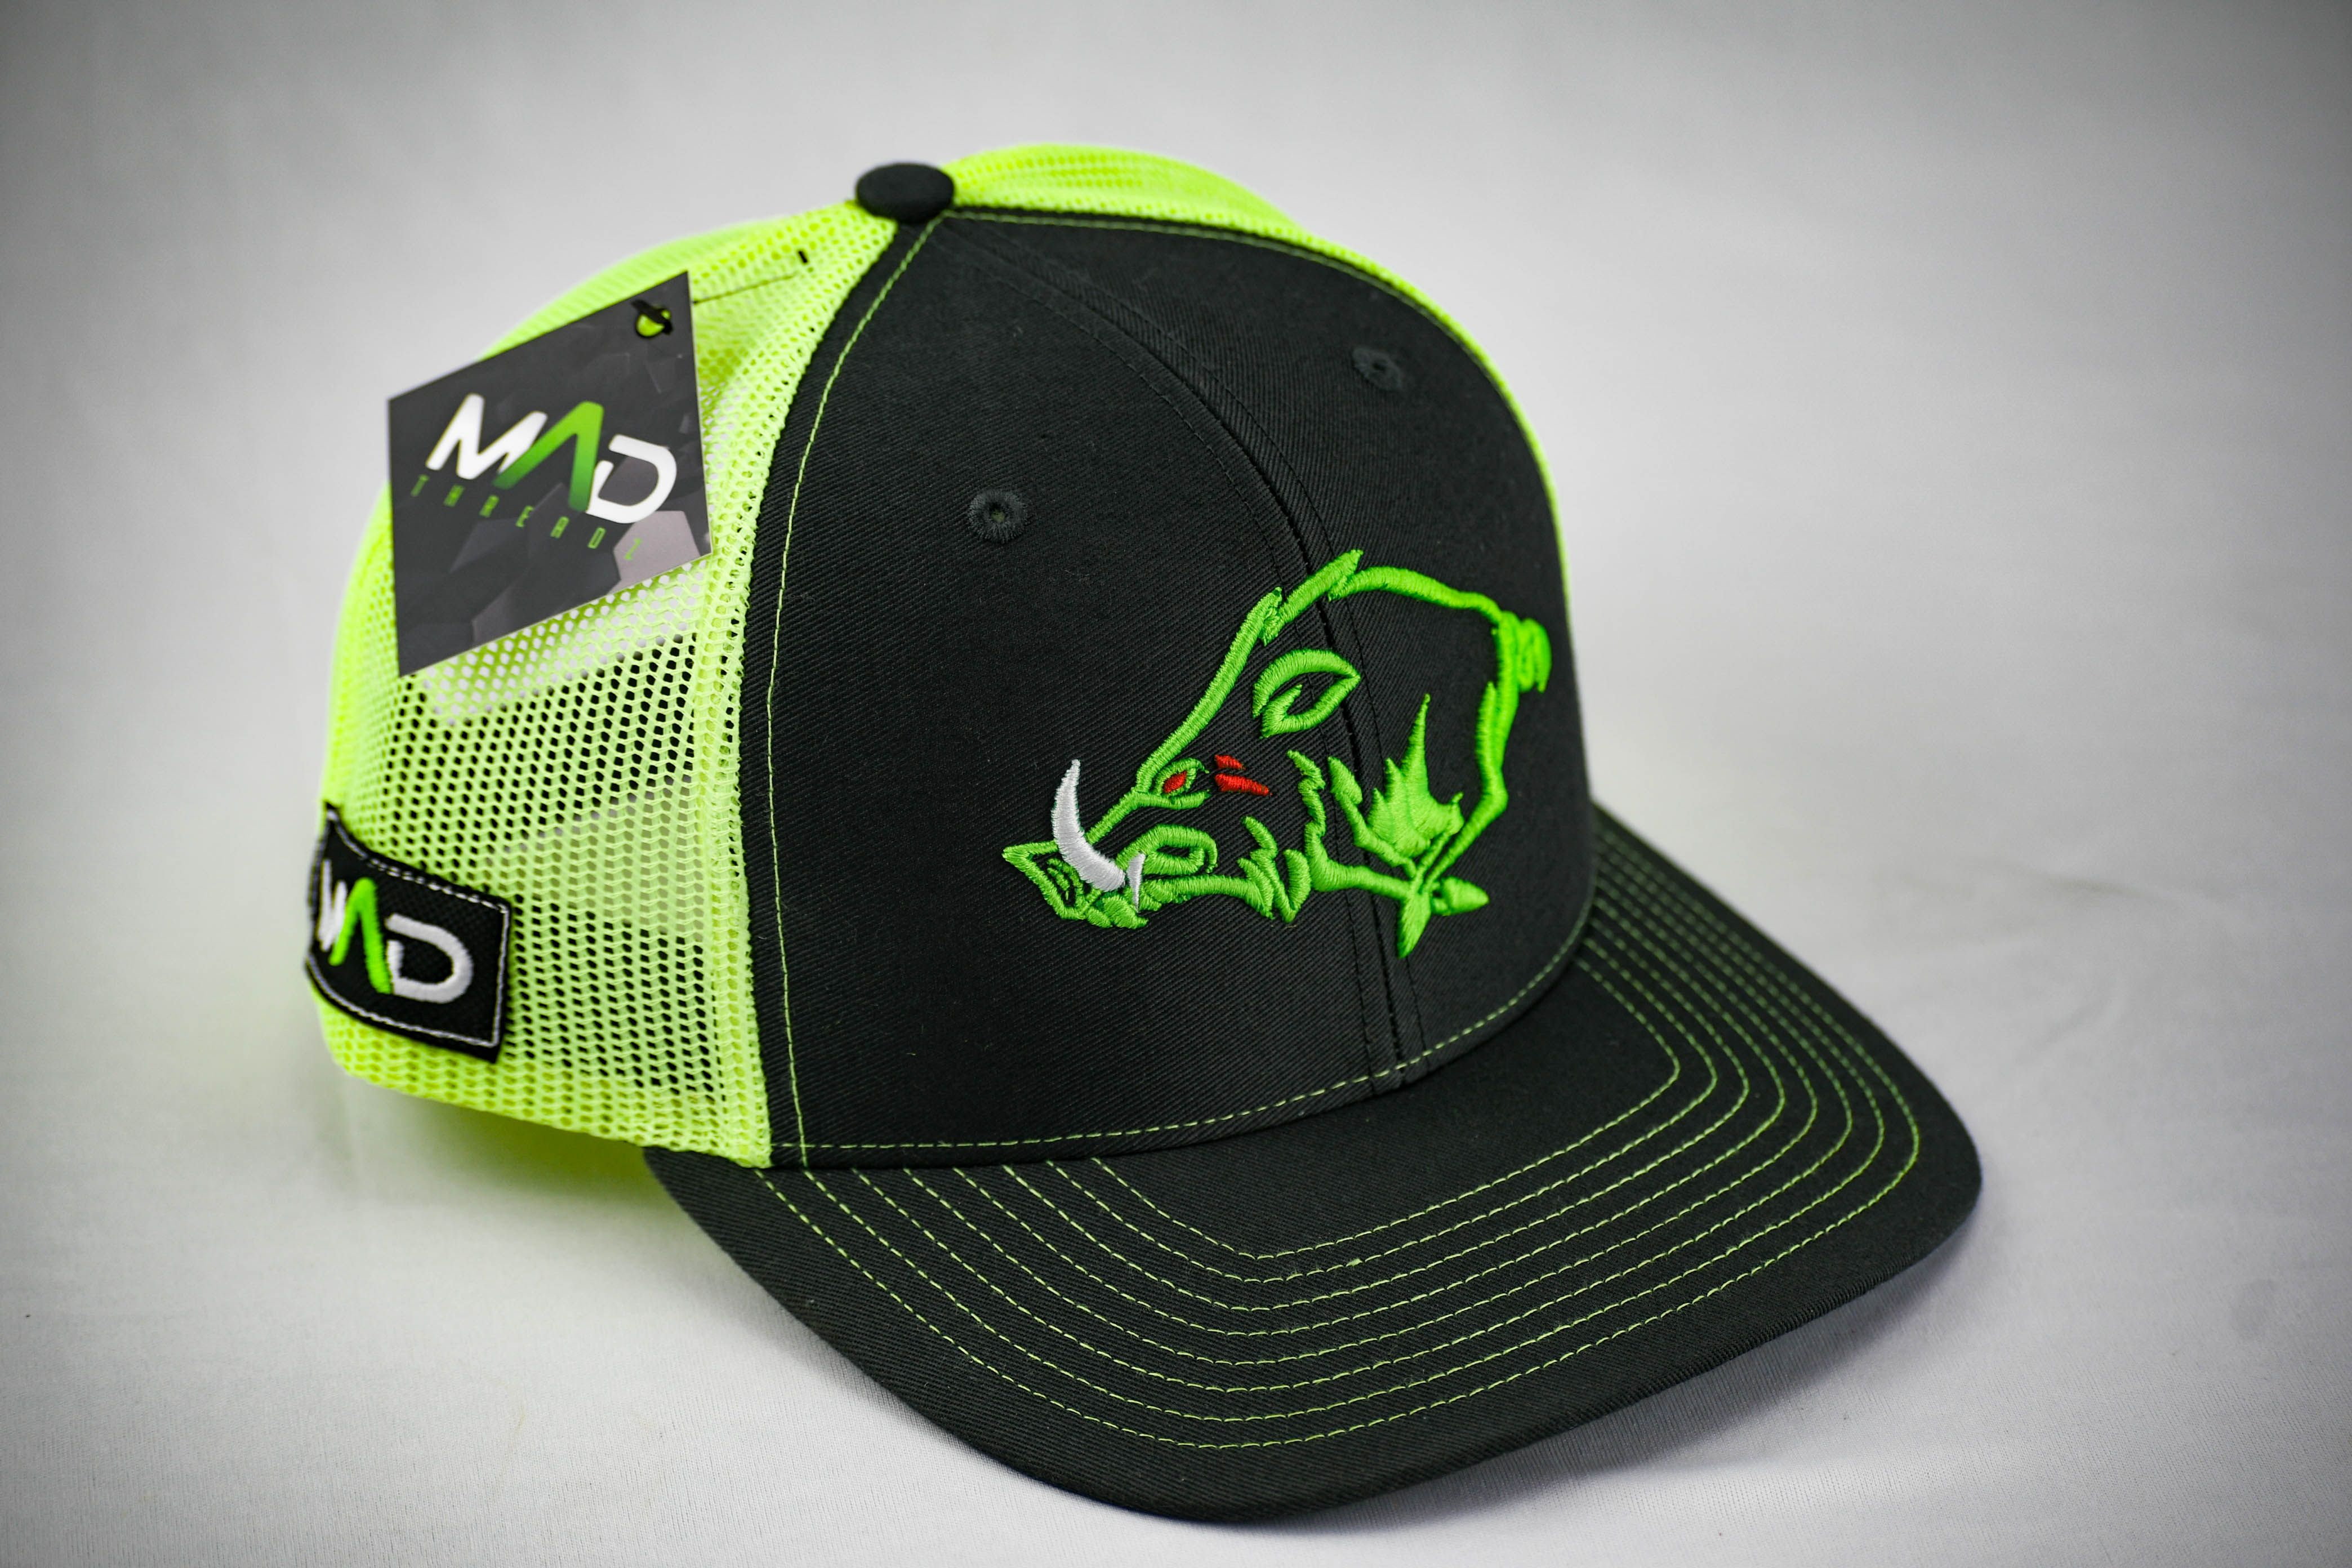 MAD Hog Hunting hat for hunters  d4998754f795